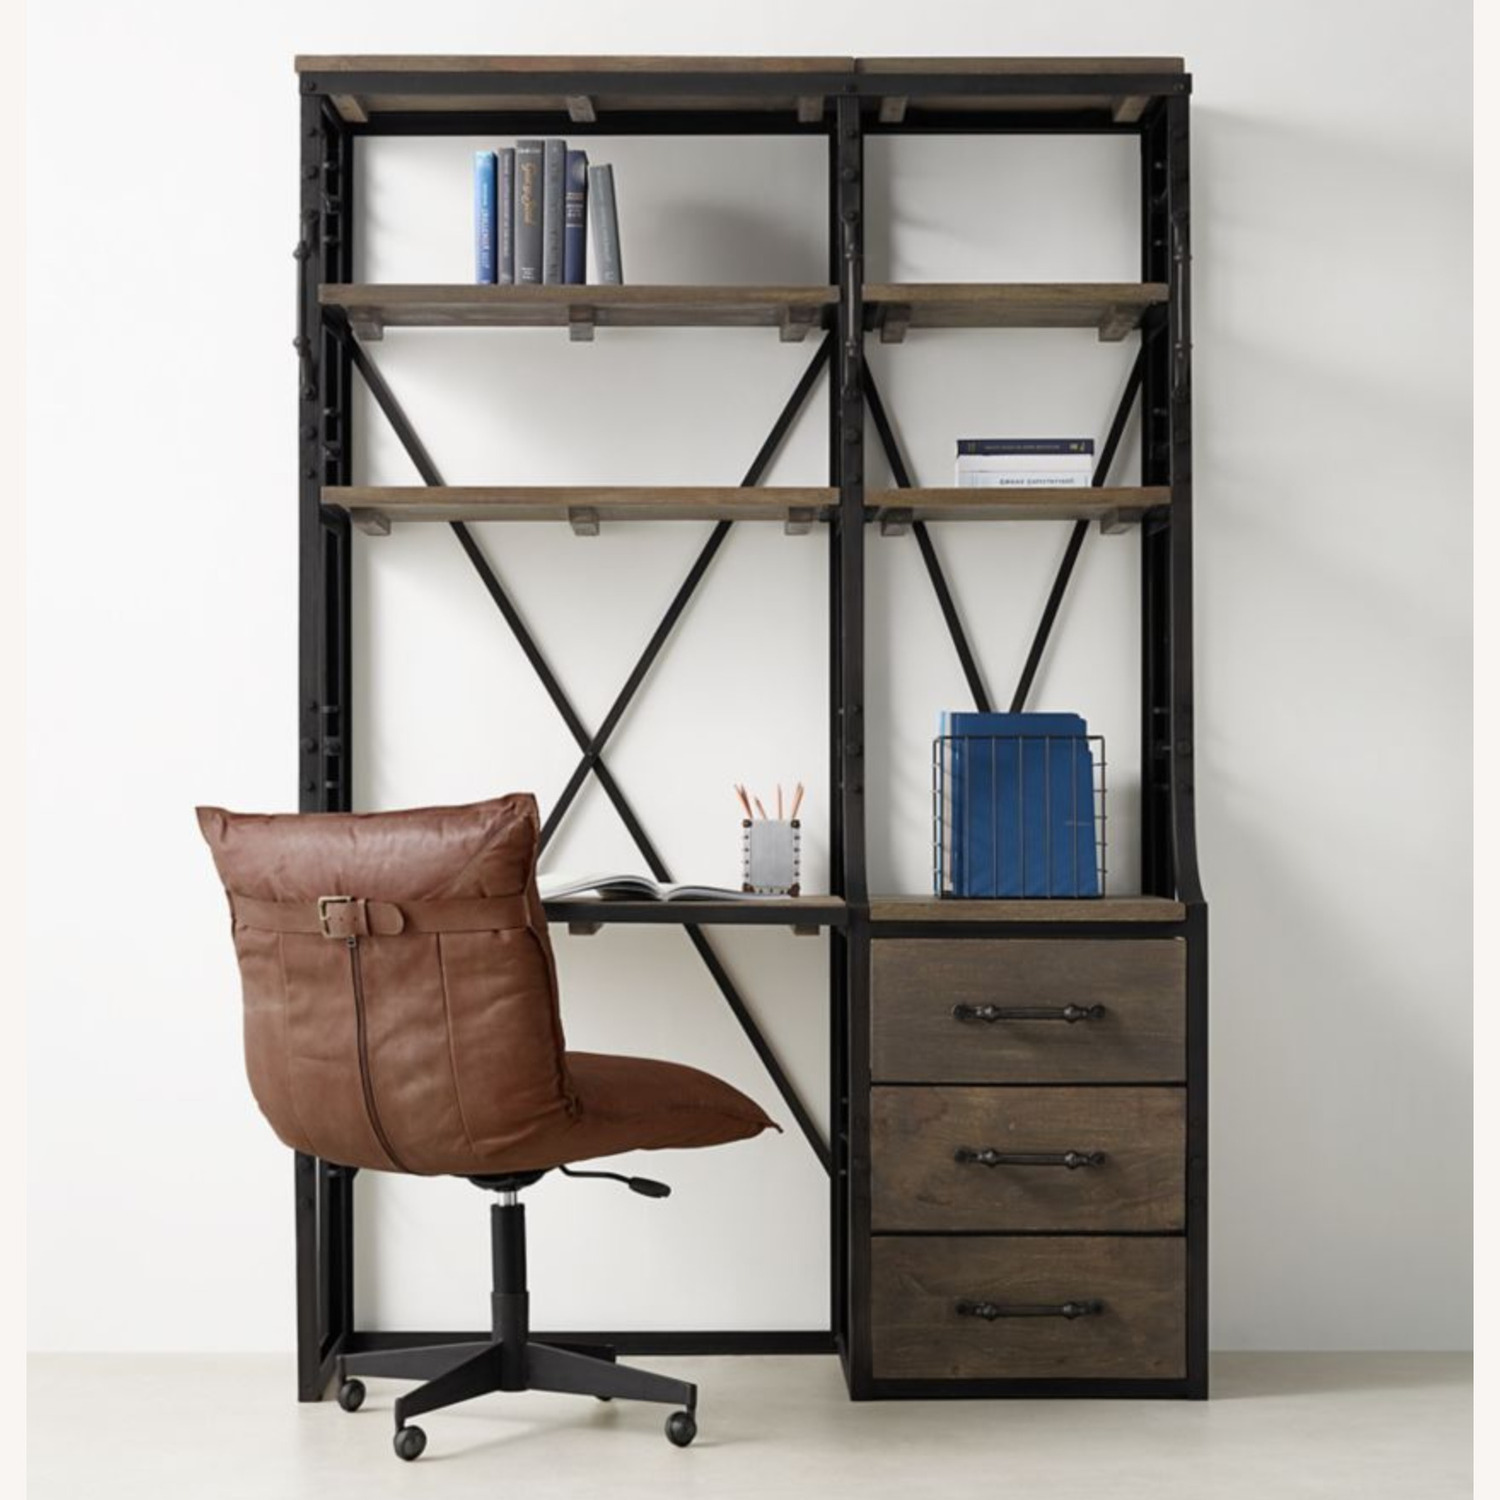 Restoration Hardware French Library Desk with Drawers - image-6